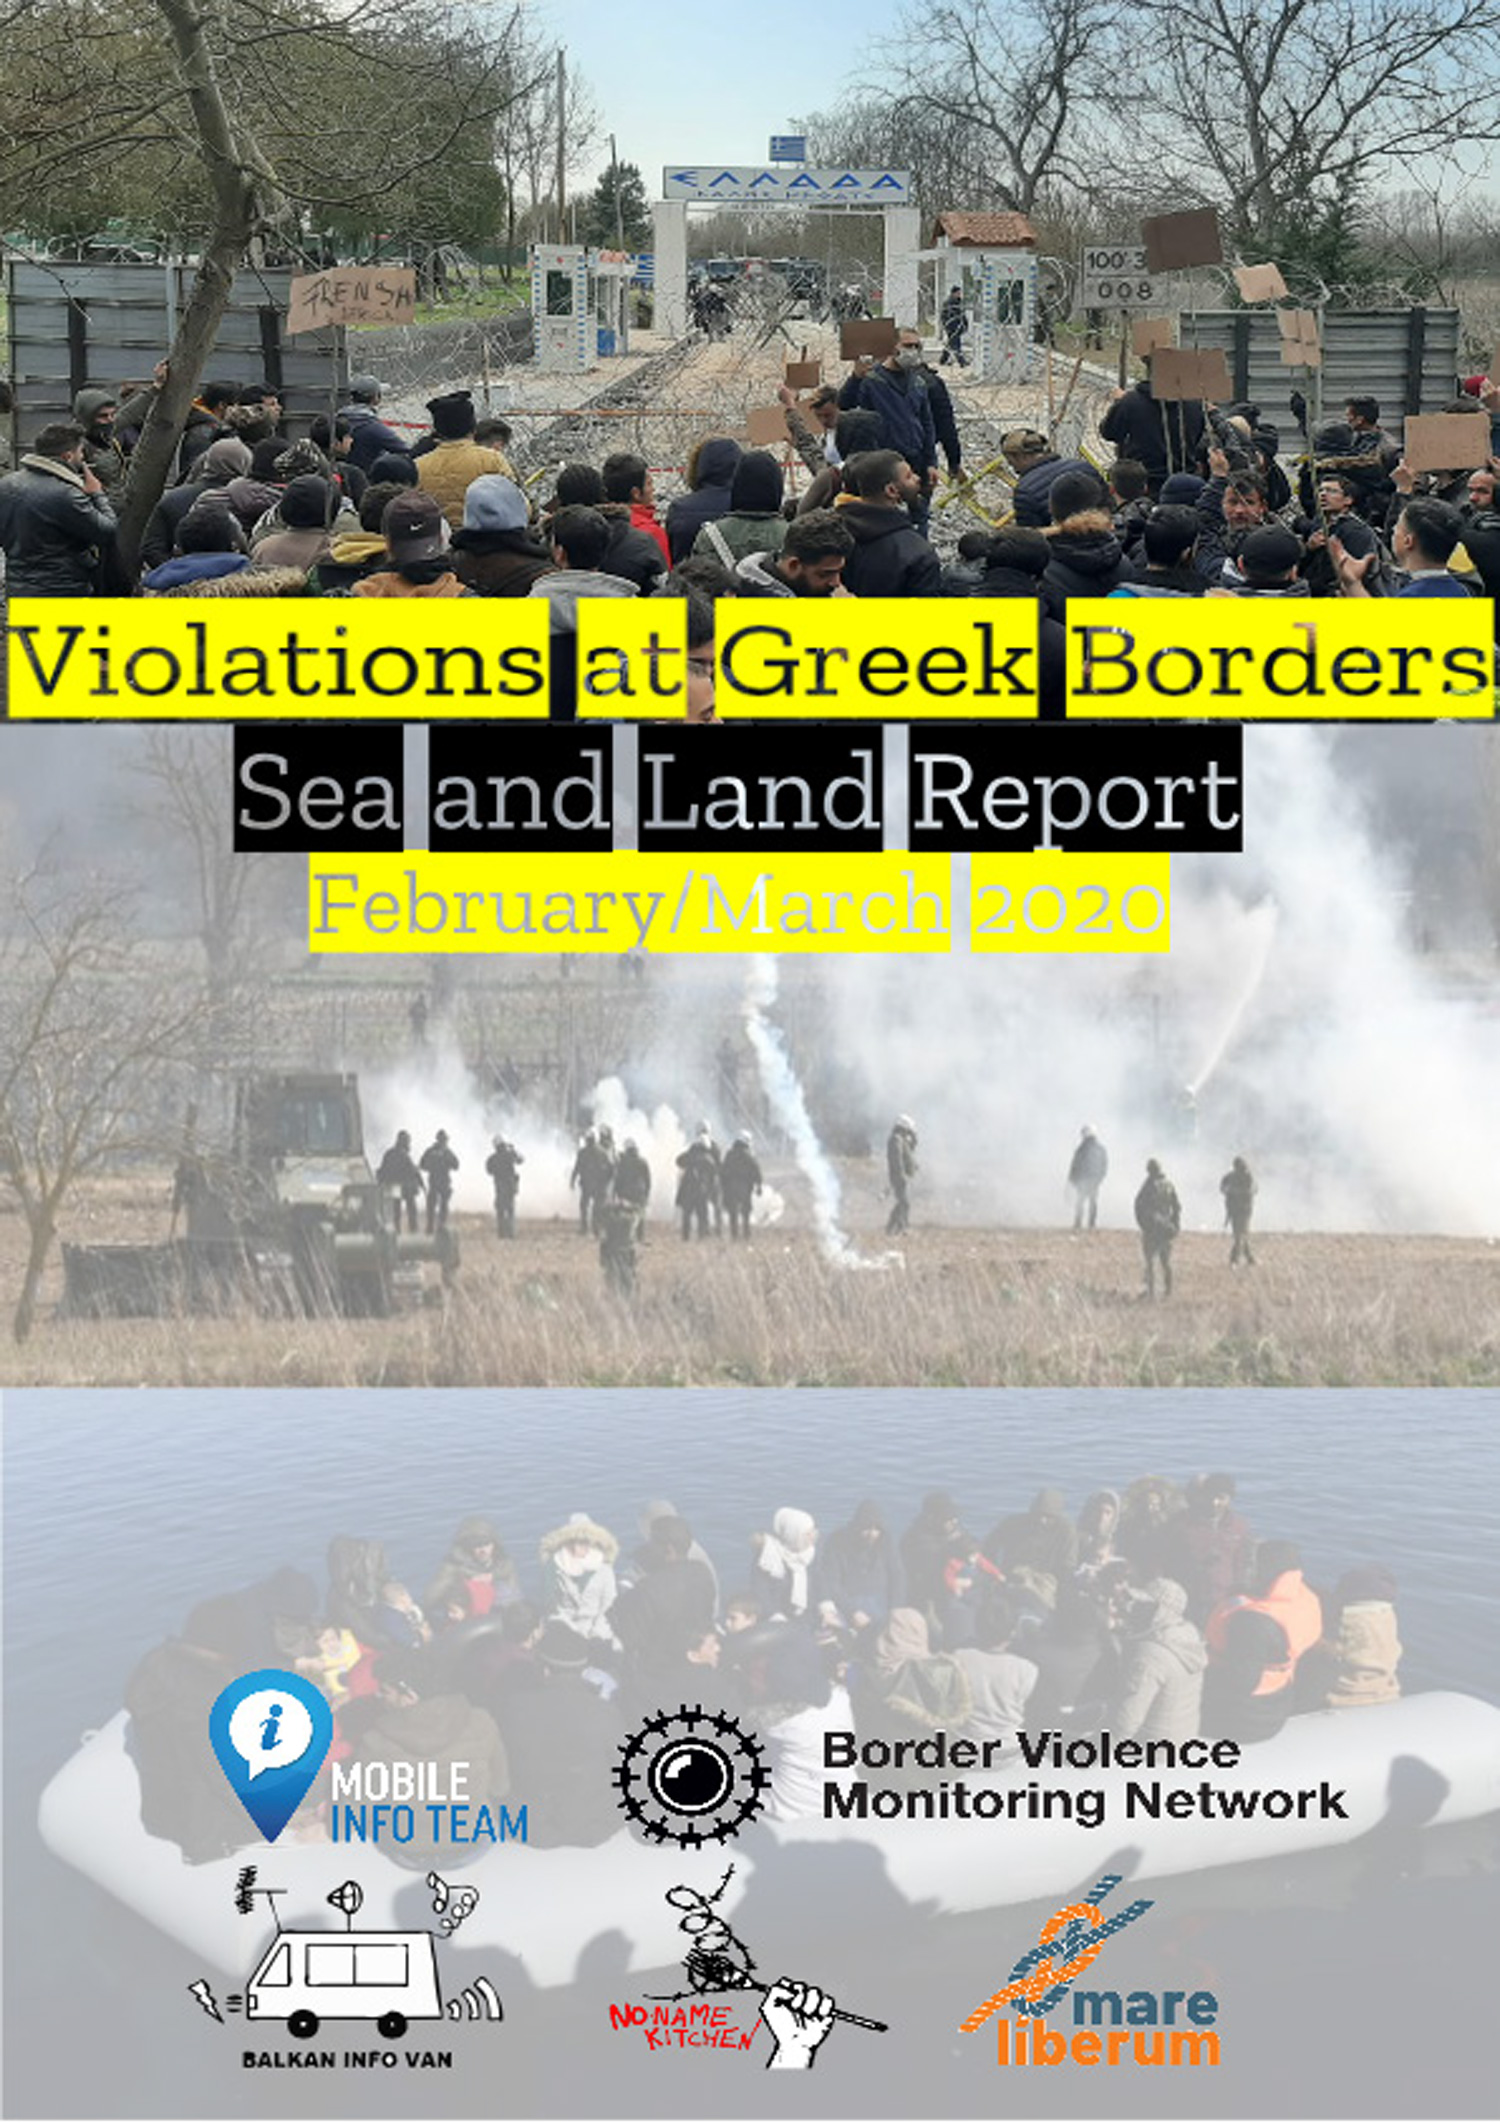 Refugee Rights Europe Pushbacks Greece-Turkey Border Violations At Greece Borders